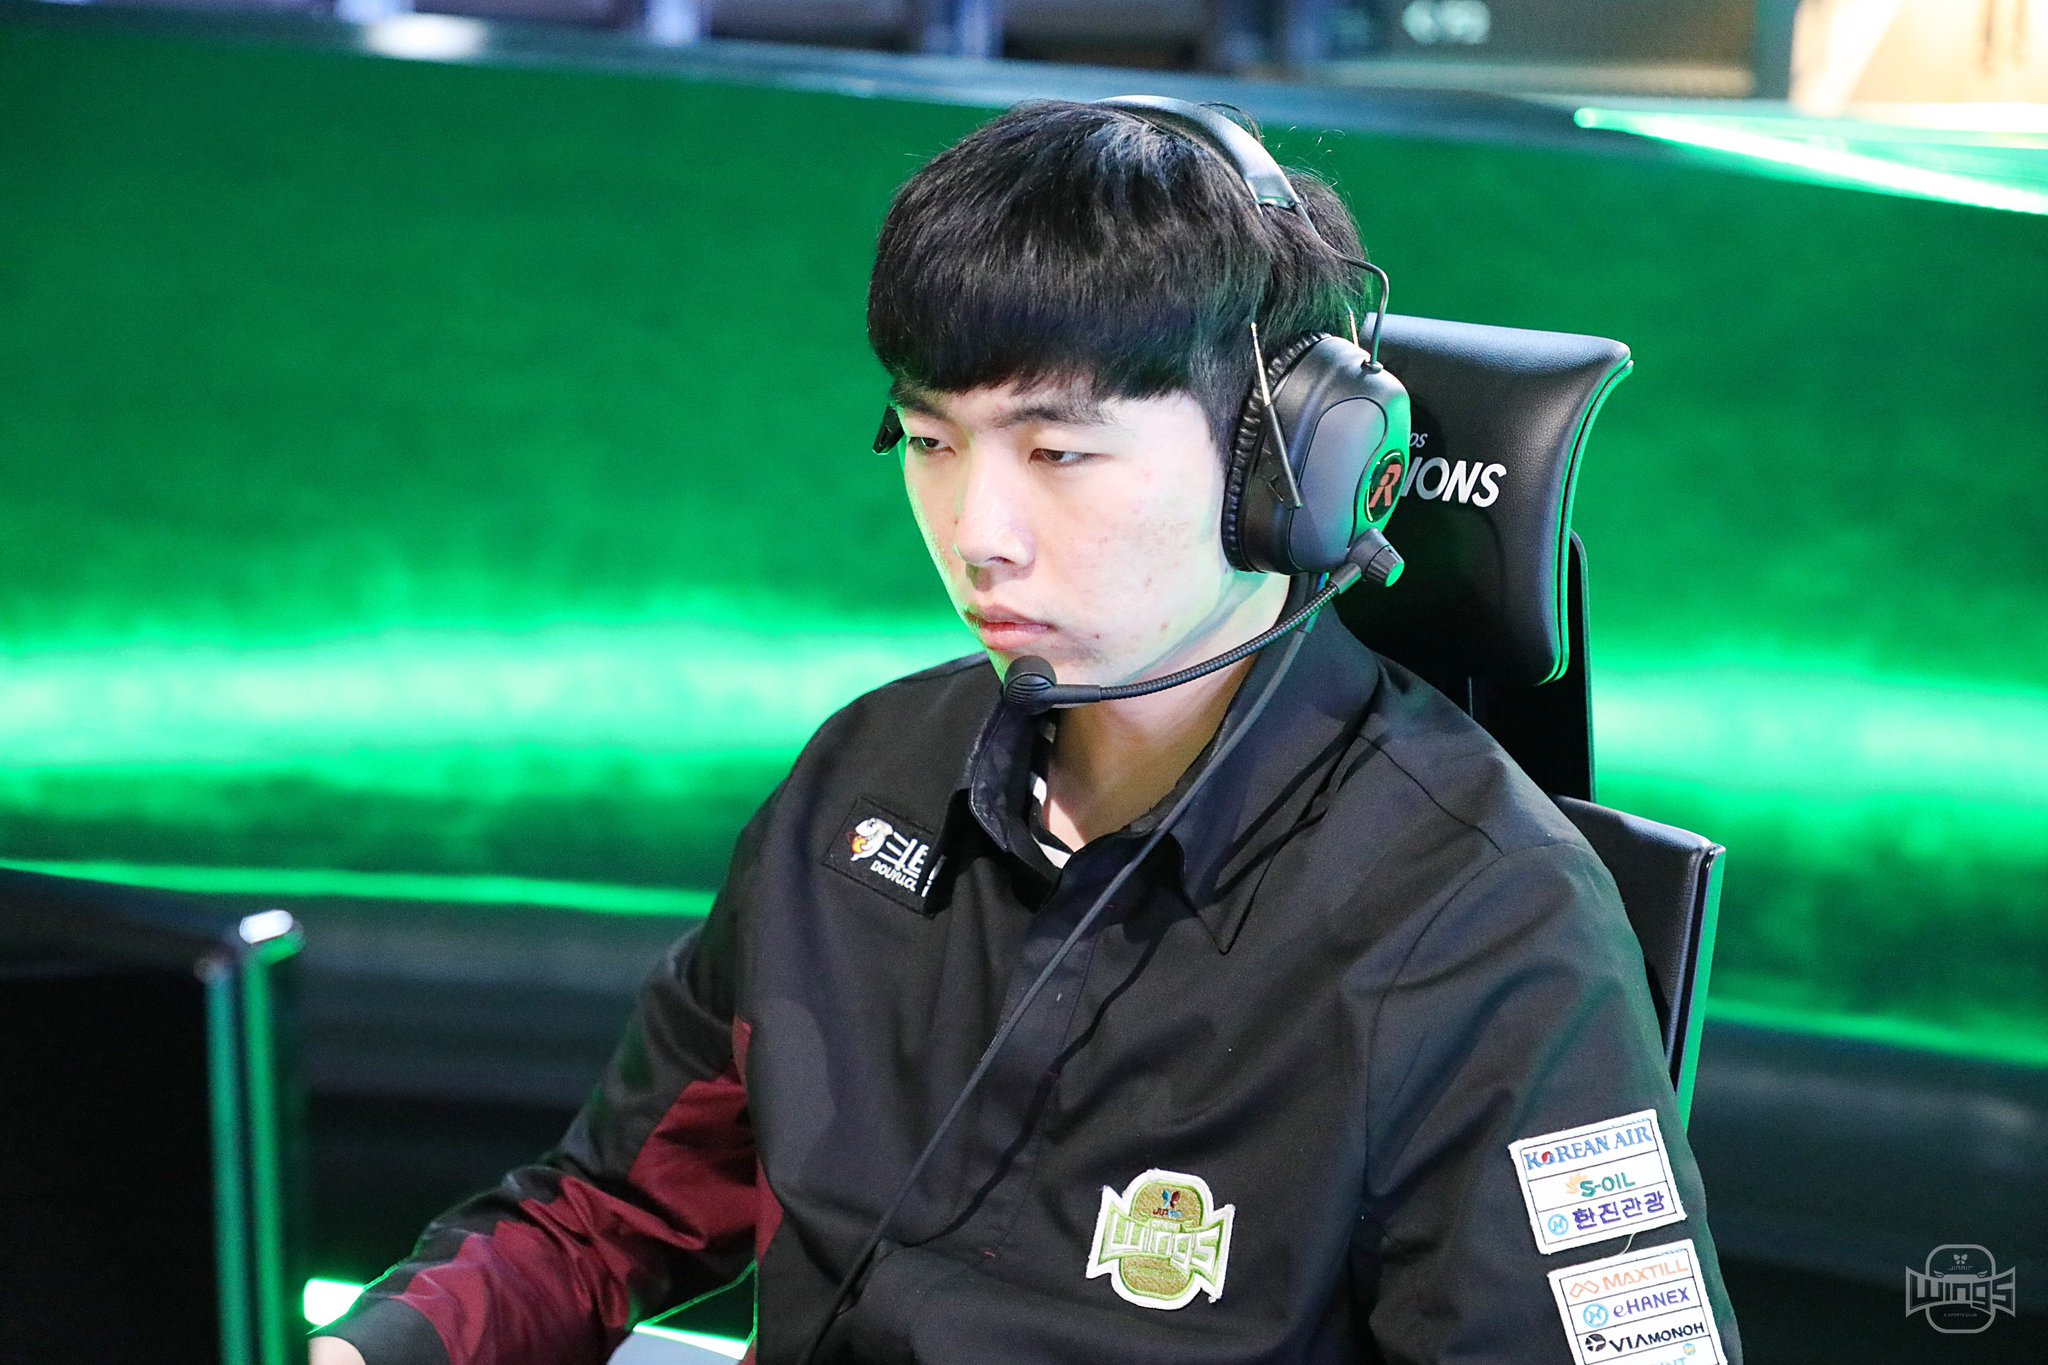 Race to the bottom: Why Jin Air's 2019 is almost as bad as Shanghai's 2018